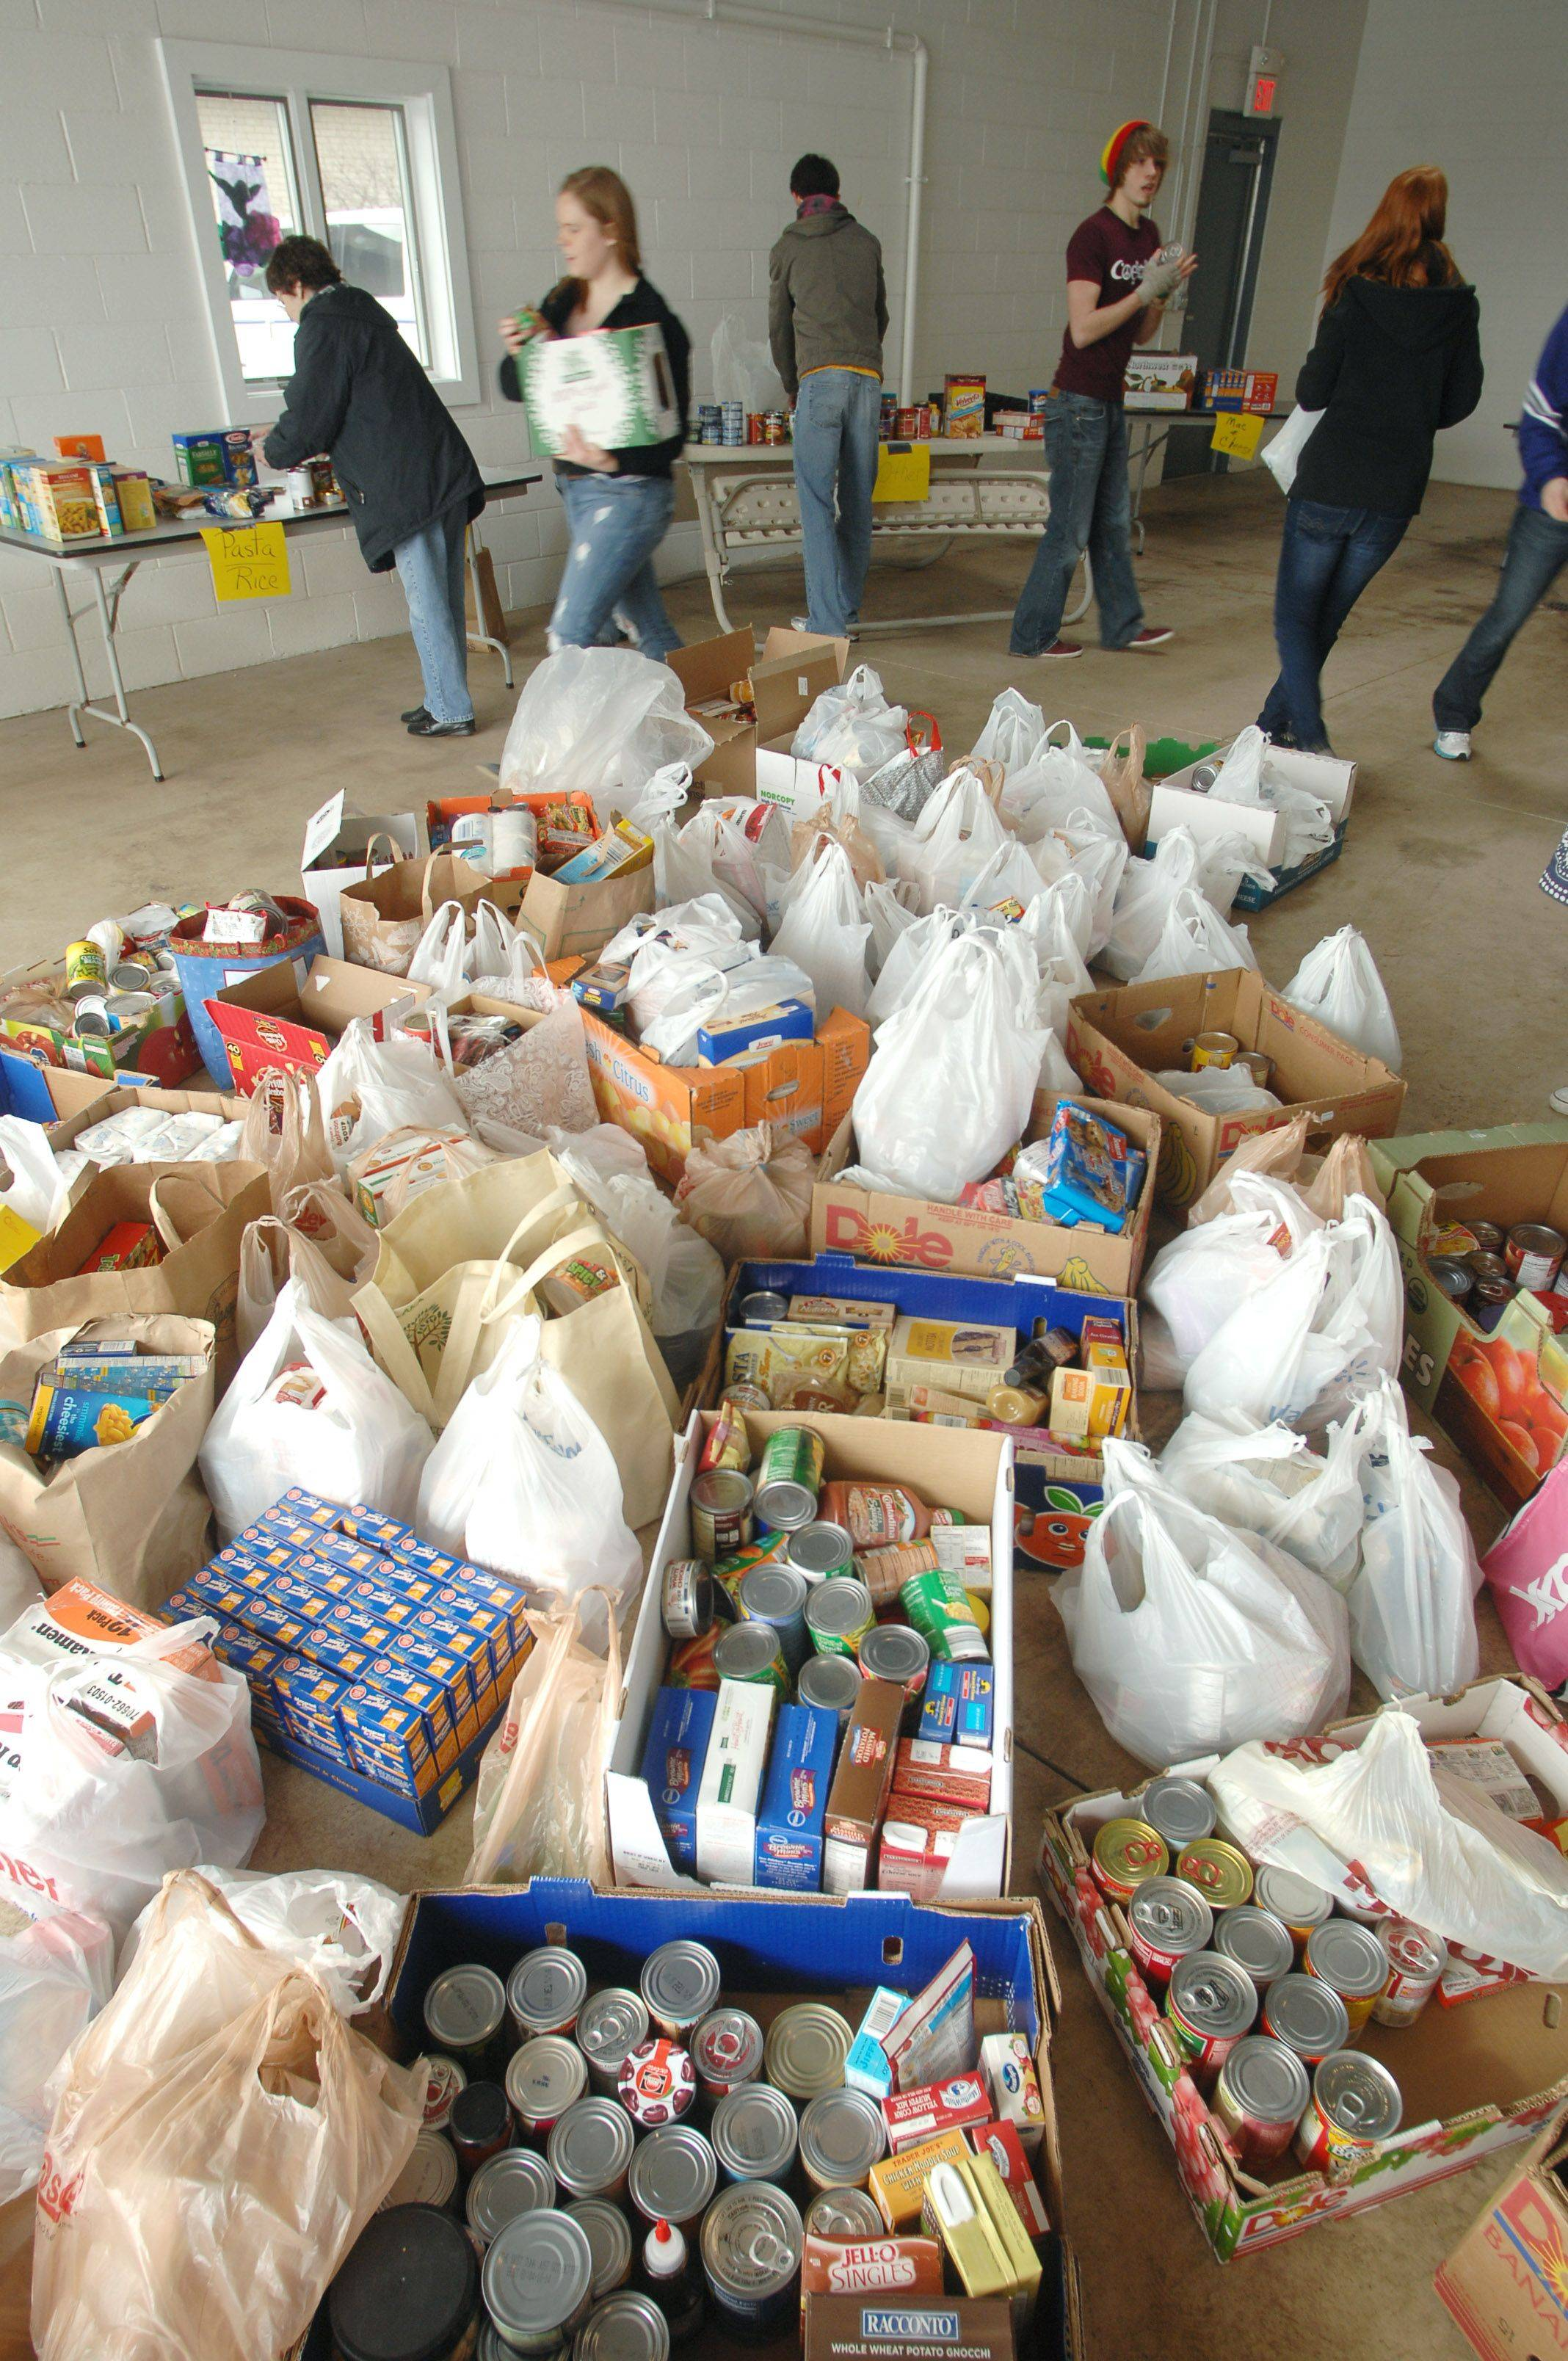 Wauconda High School students organize the food delivery at the Wauconda-Island Lake Food Pantry Friday morning. Students collected more than 2,100 items as part of their annual food drive this year.